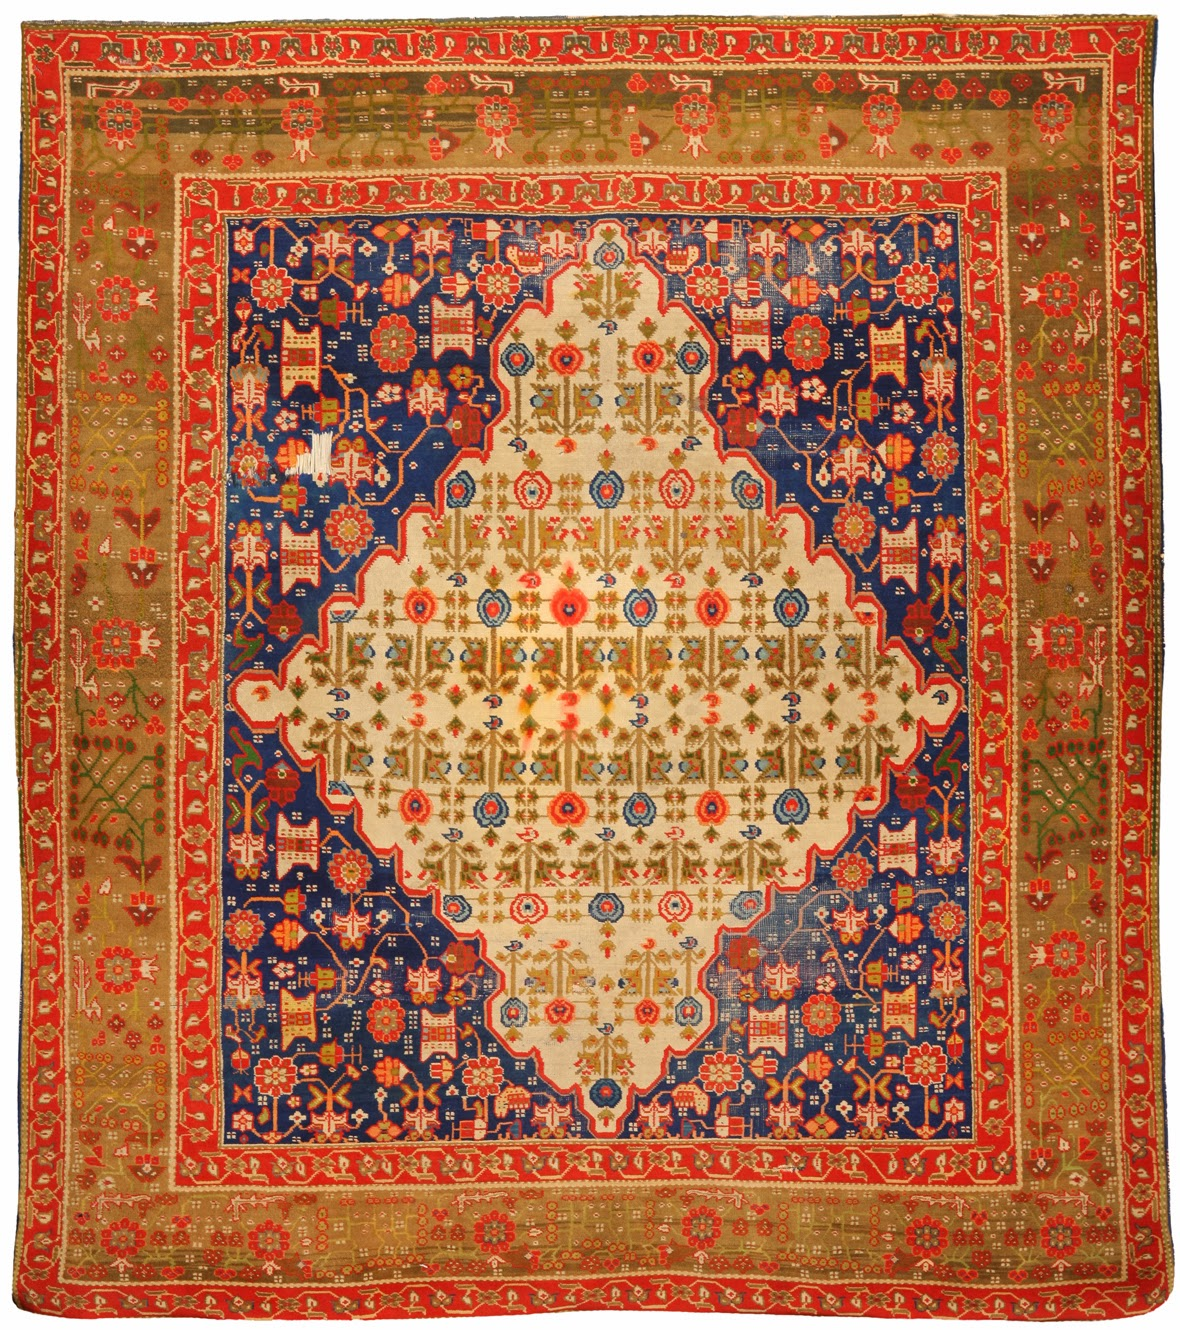 Masters Of Craft : Crafts Of India: Wool Rugs